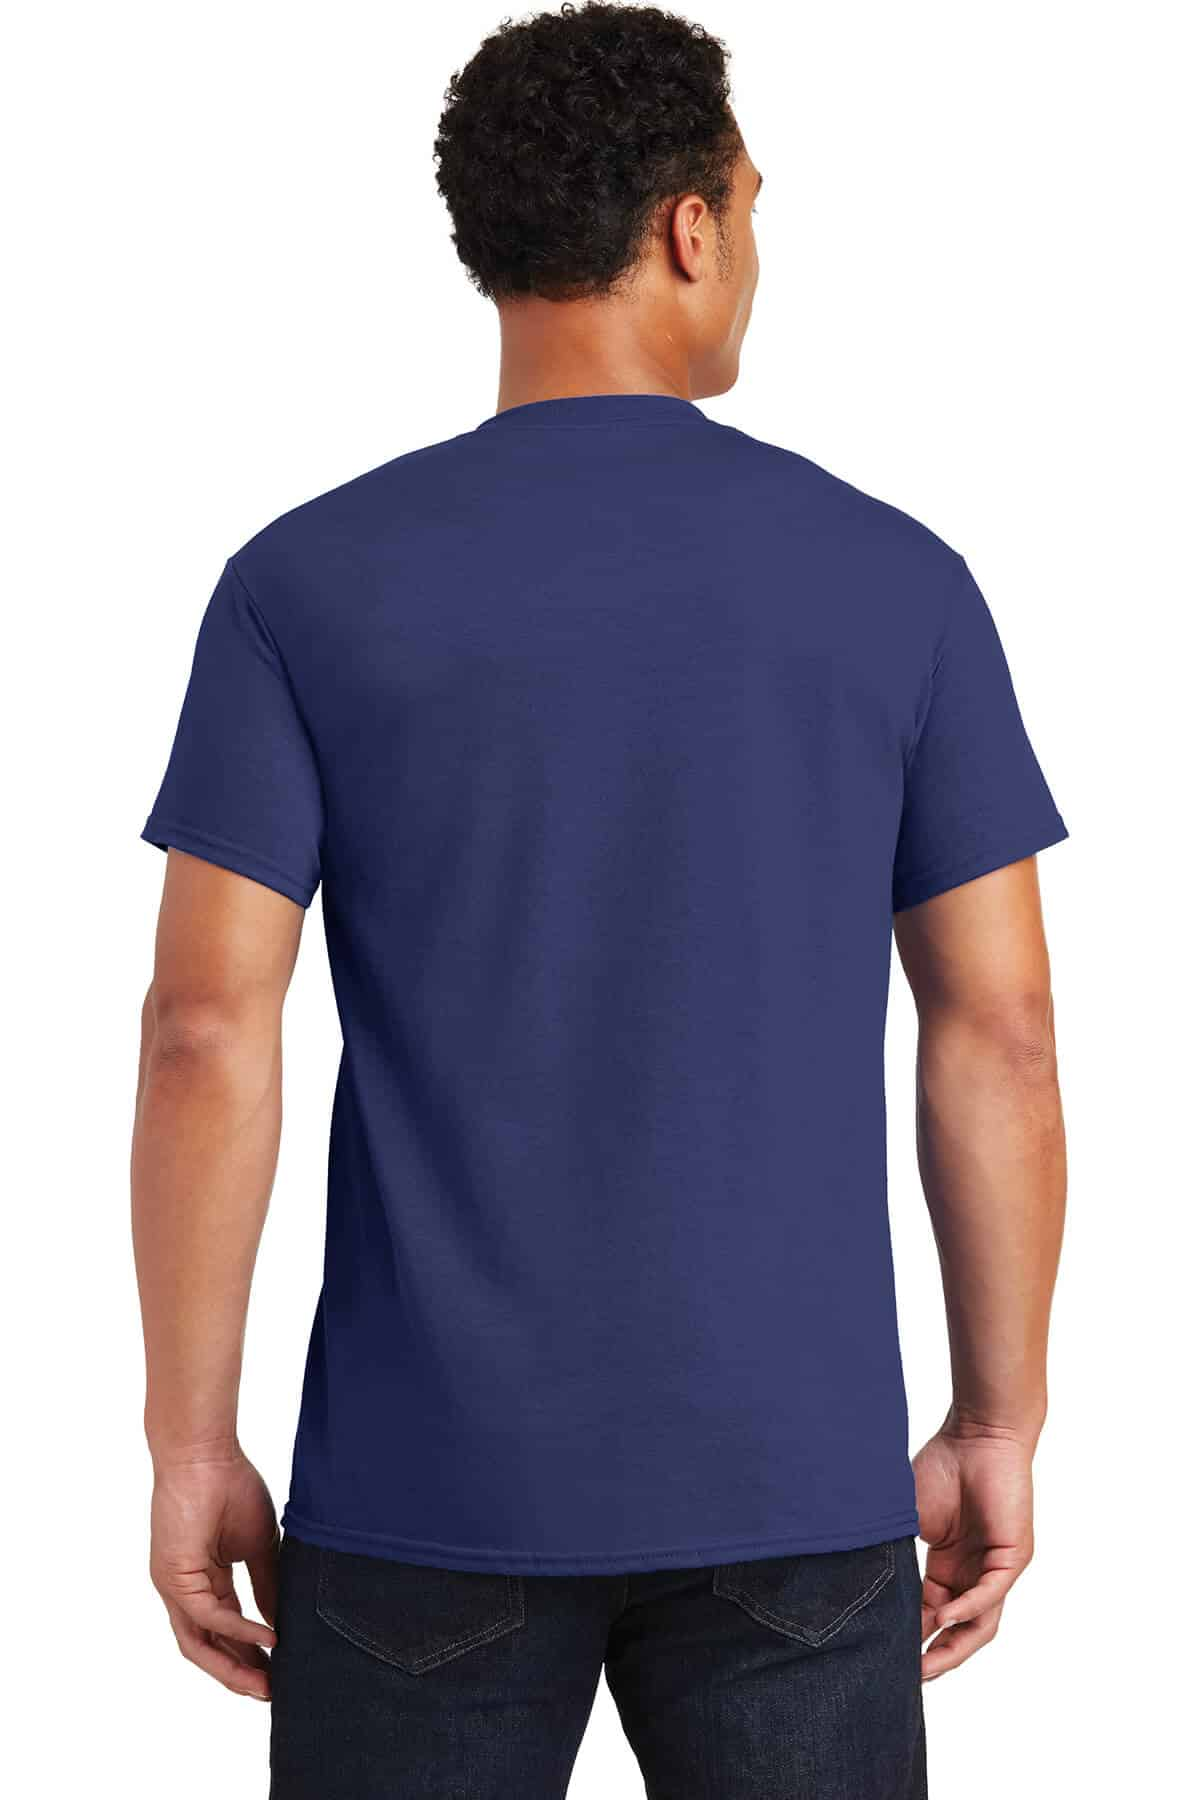 Metro Blue TeeShirt Back